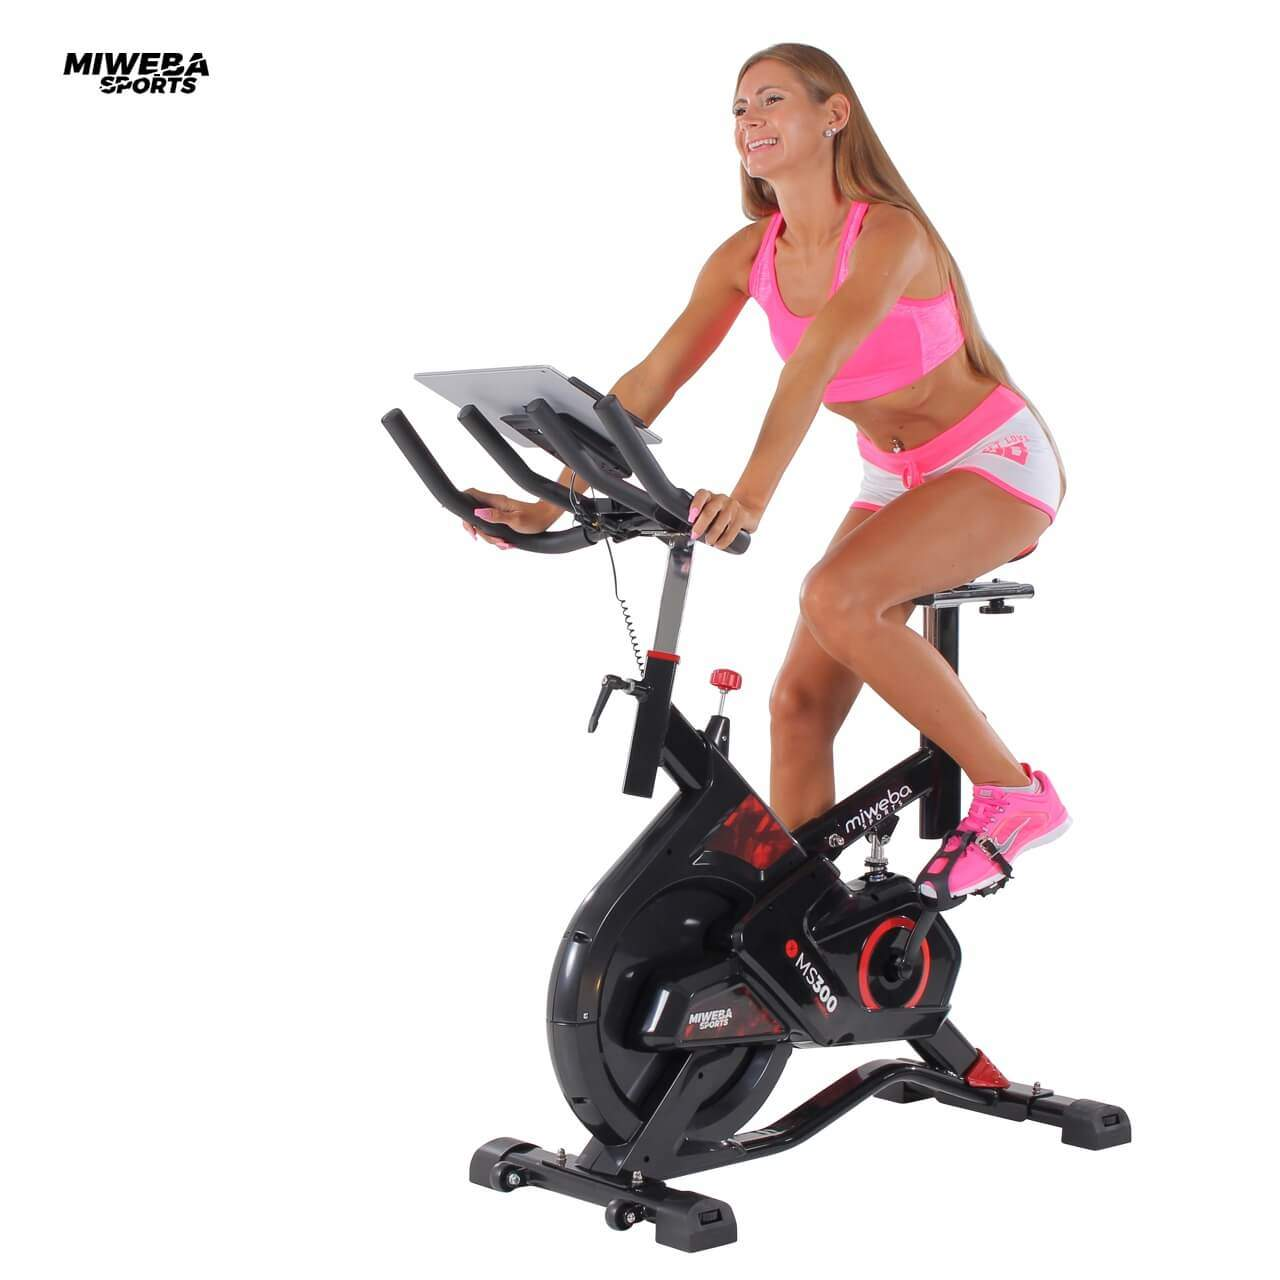 Miweba Sports Fitnessbike MS300